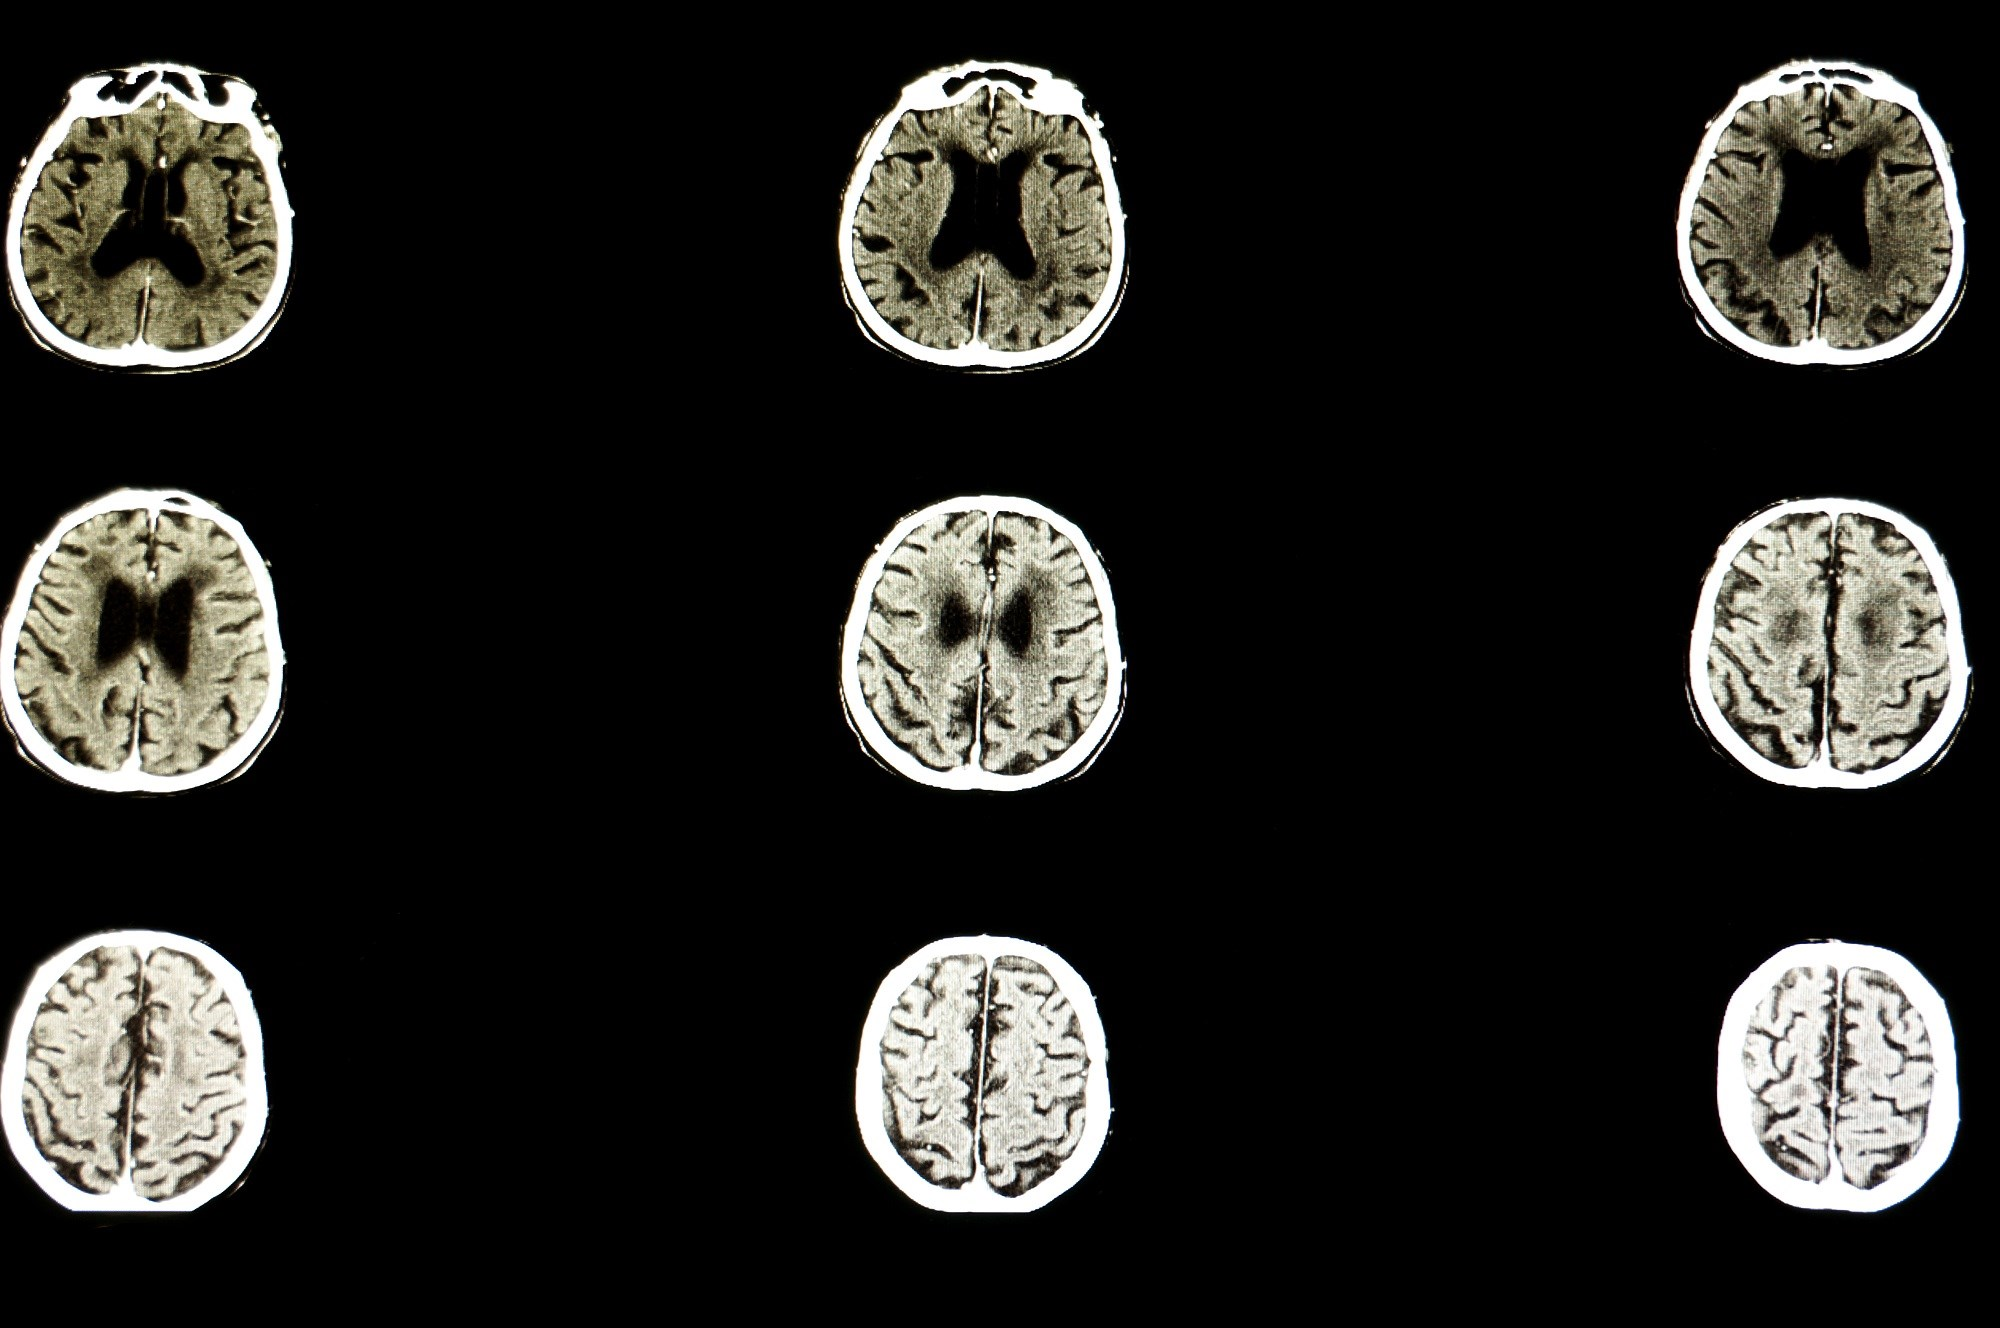 In patients with progressive multiple sclerosis, slower progression of brain atrophy was seen with ibudilast versus placebo.